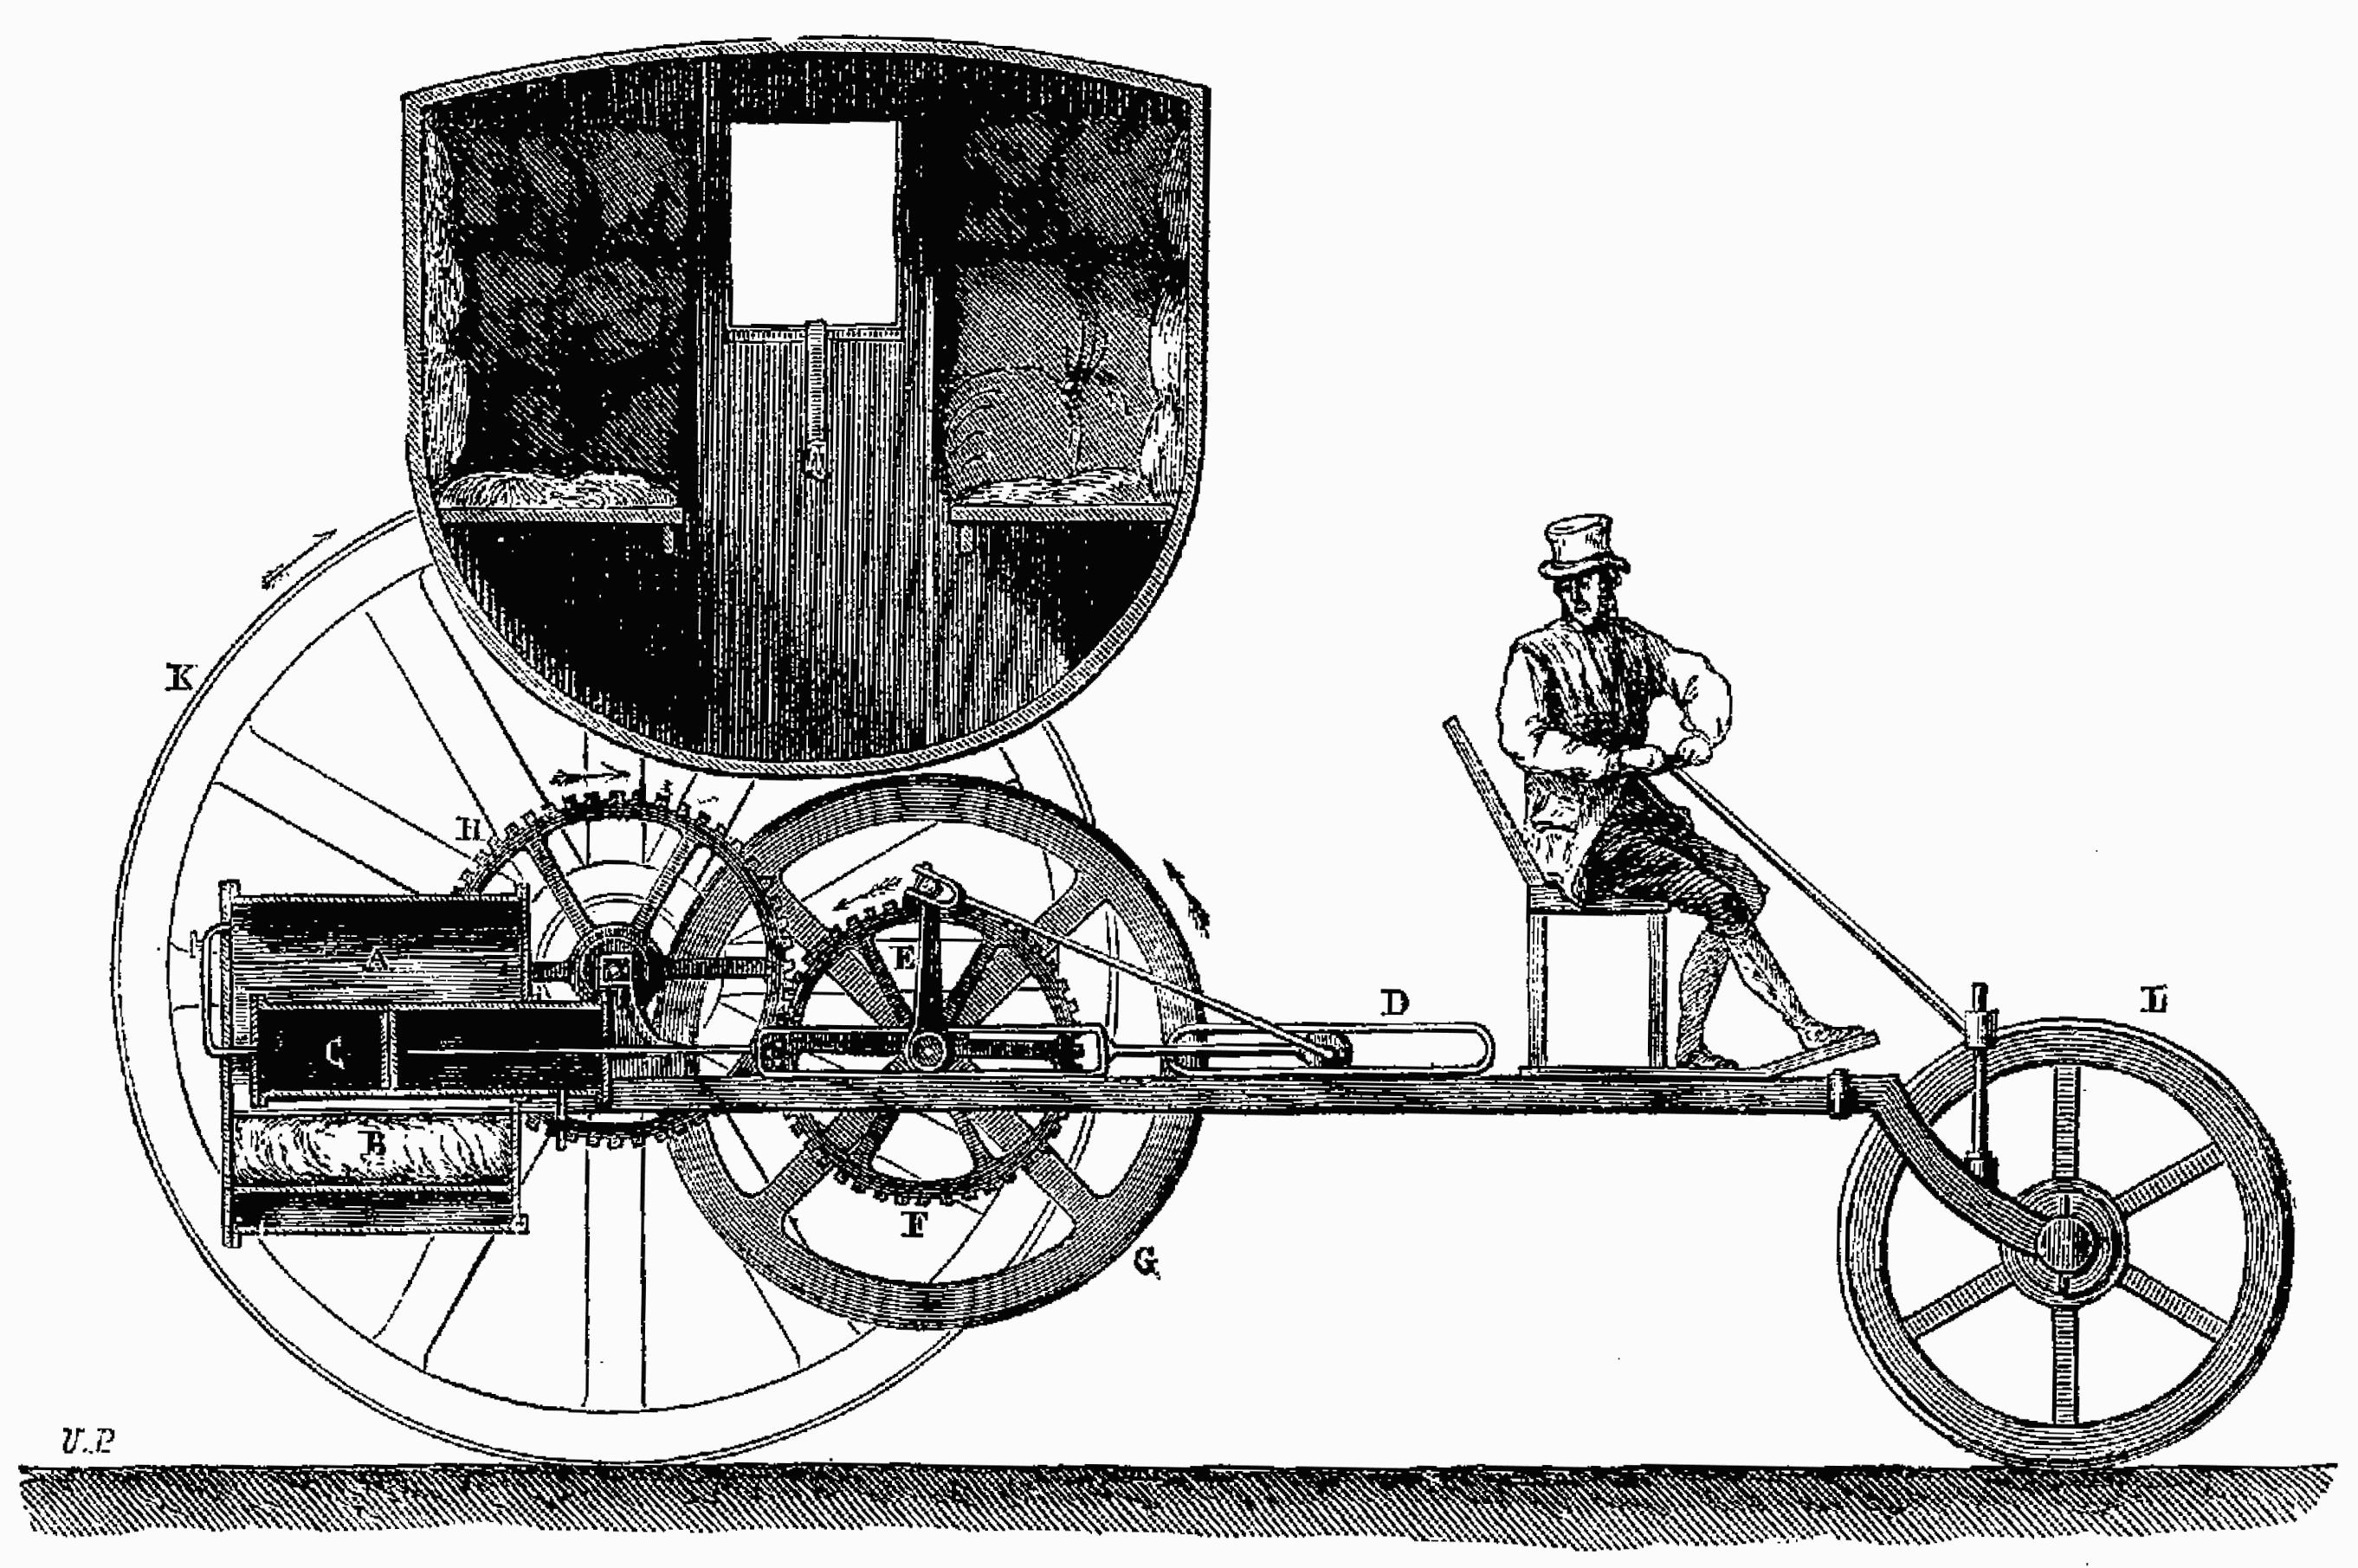 file t1 d274 fig 124 voiture vapeur par trevithick et wikimedia commons. Black Bedroom Furniture Sets. Home Design Ideas